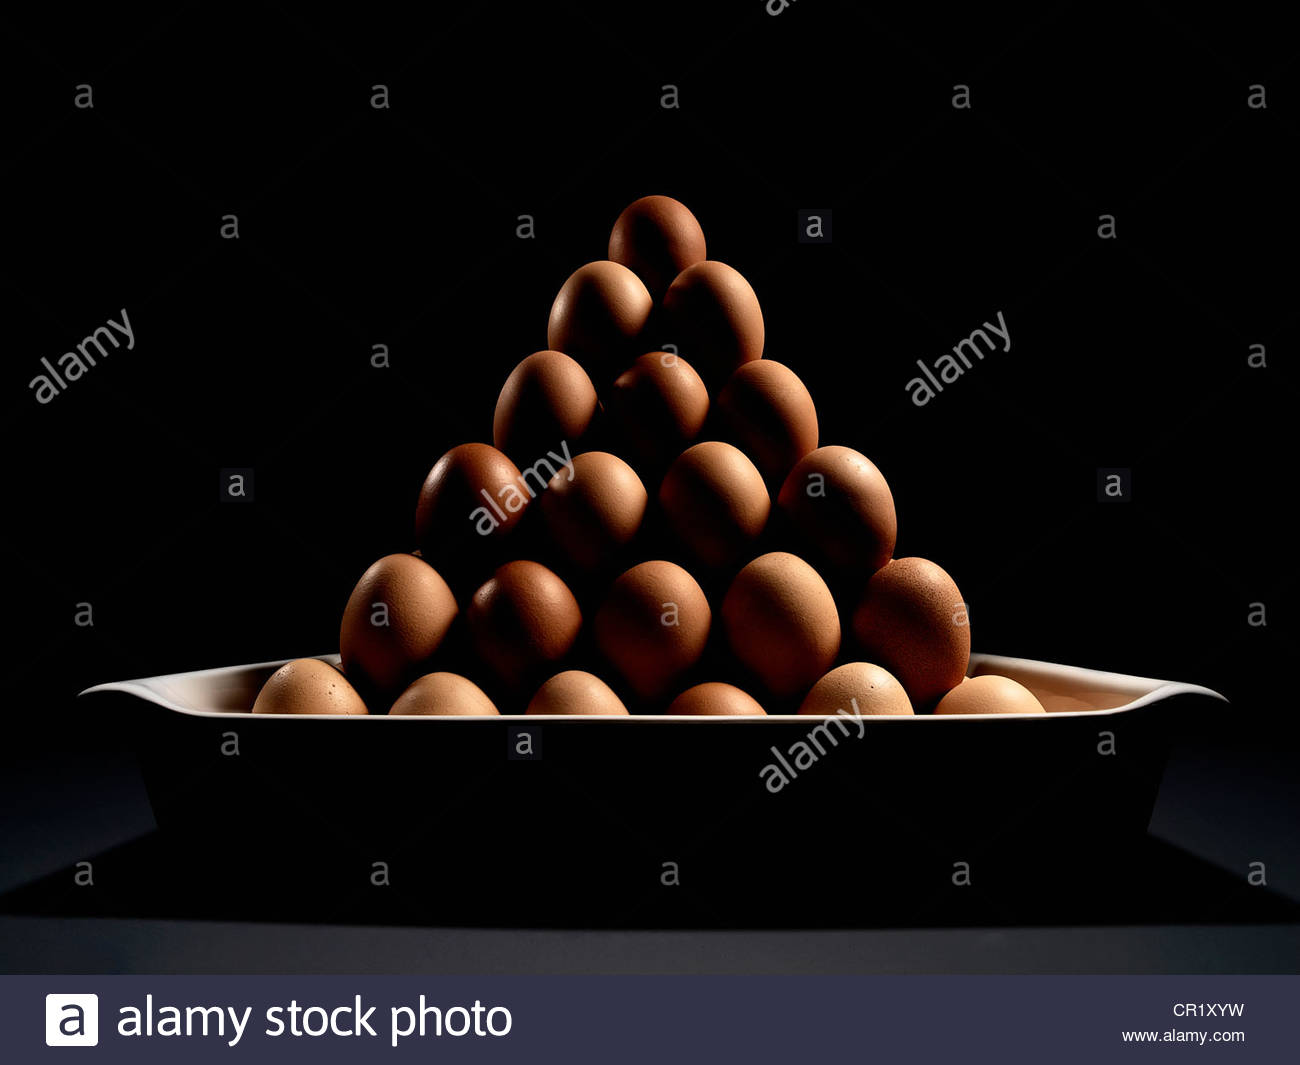 Eggs stacked in dish - Stock Image